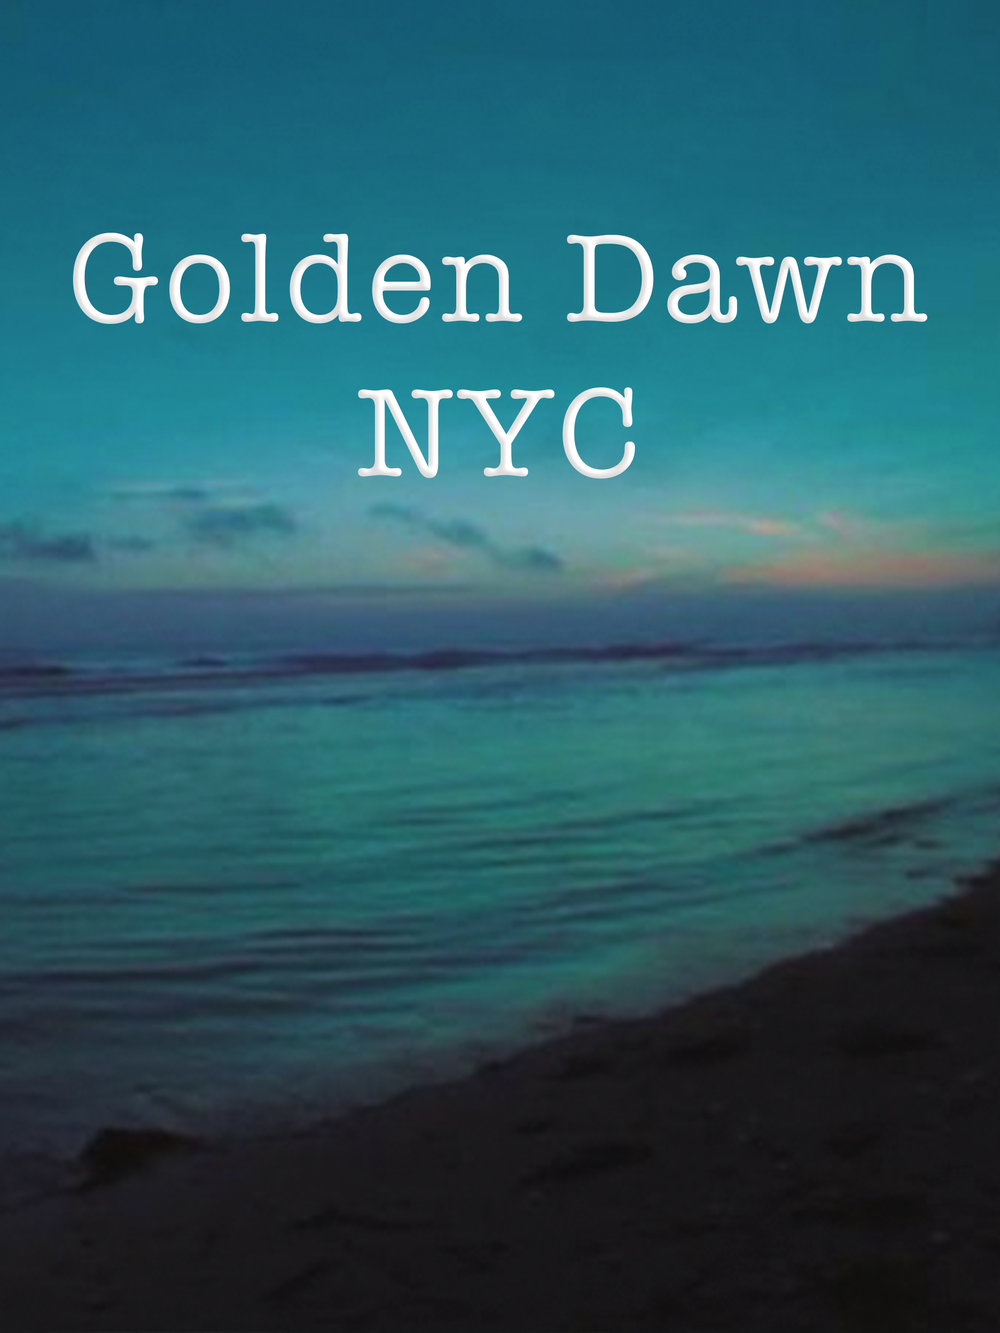 Golden Dawn NYC C Film By Richard Ledes.jpg